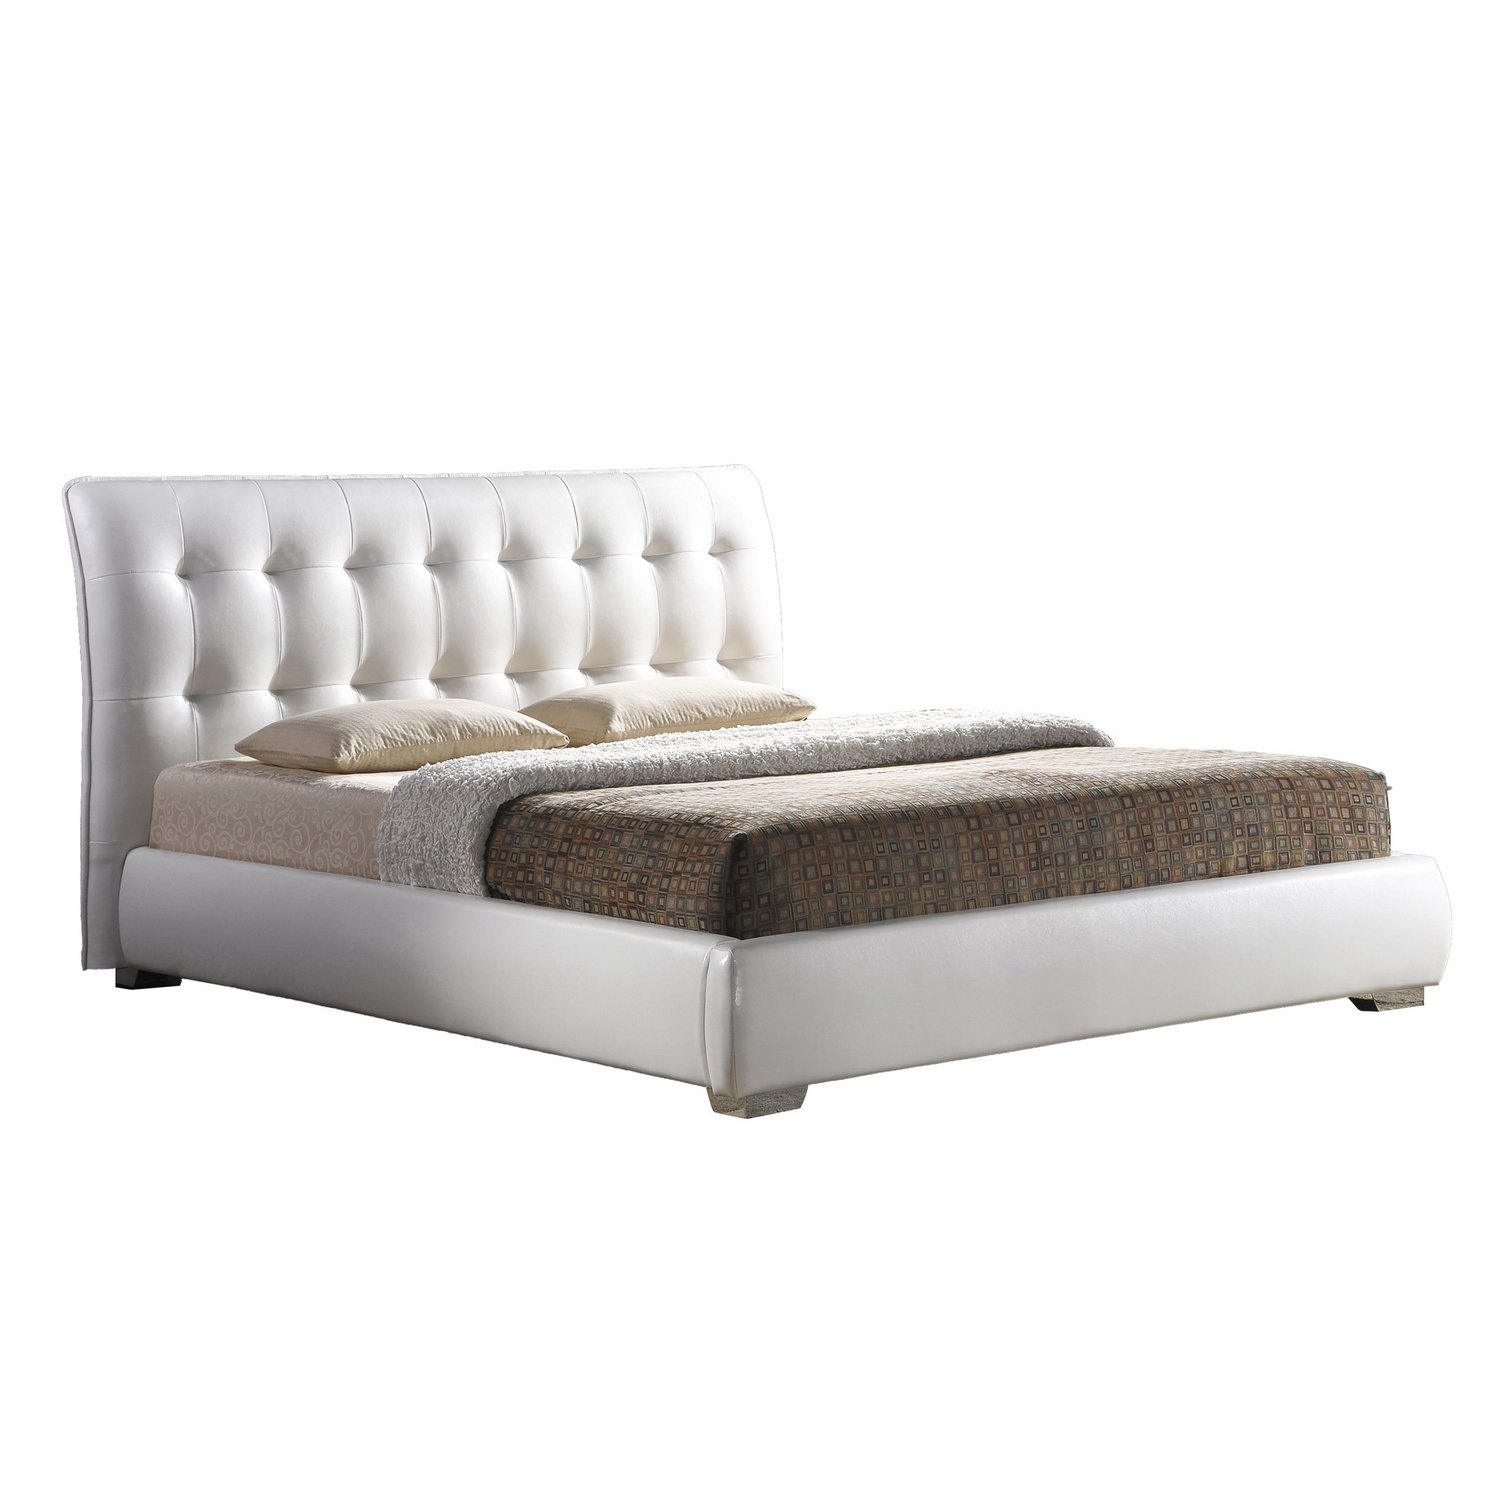 amazoncom baxton studio jeslyn modern bed with tufted headboard  - amazoncom baxton studio jeslyn modern bed with tufted headboard kingwhite kitchen  dining